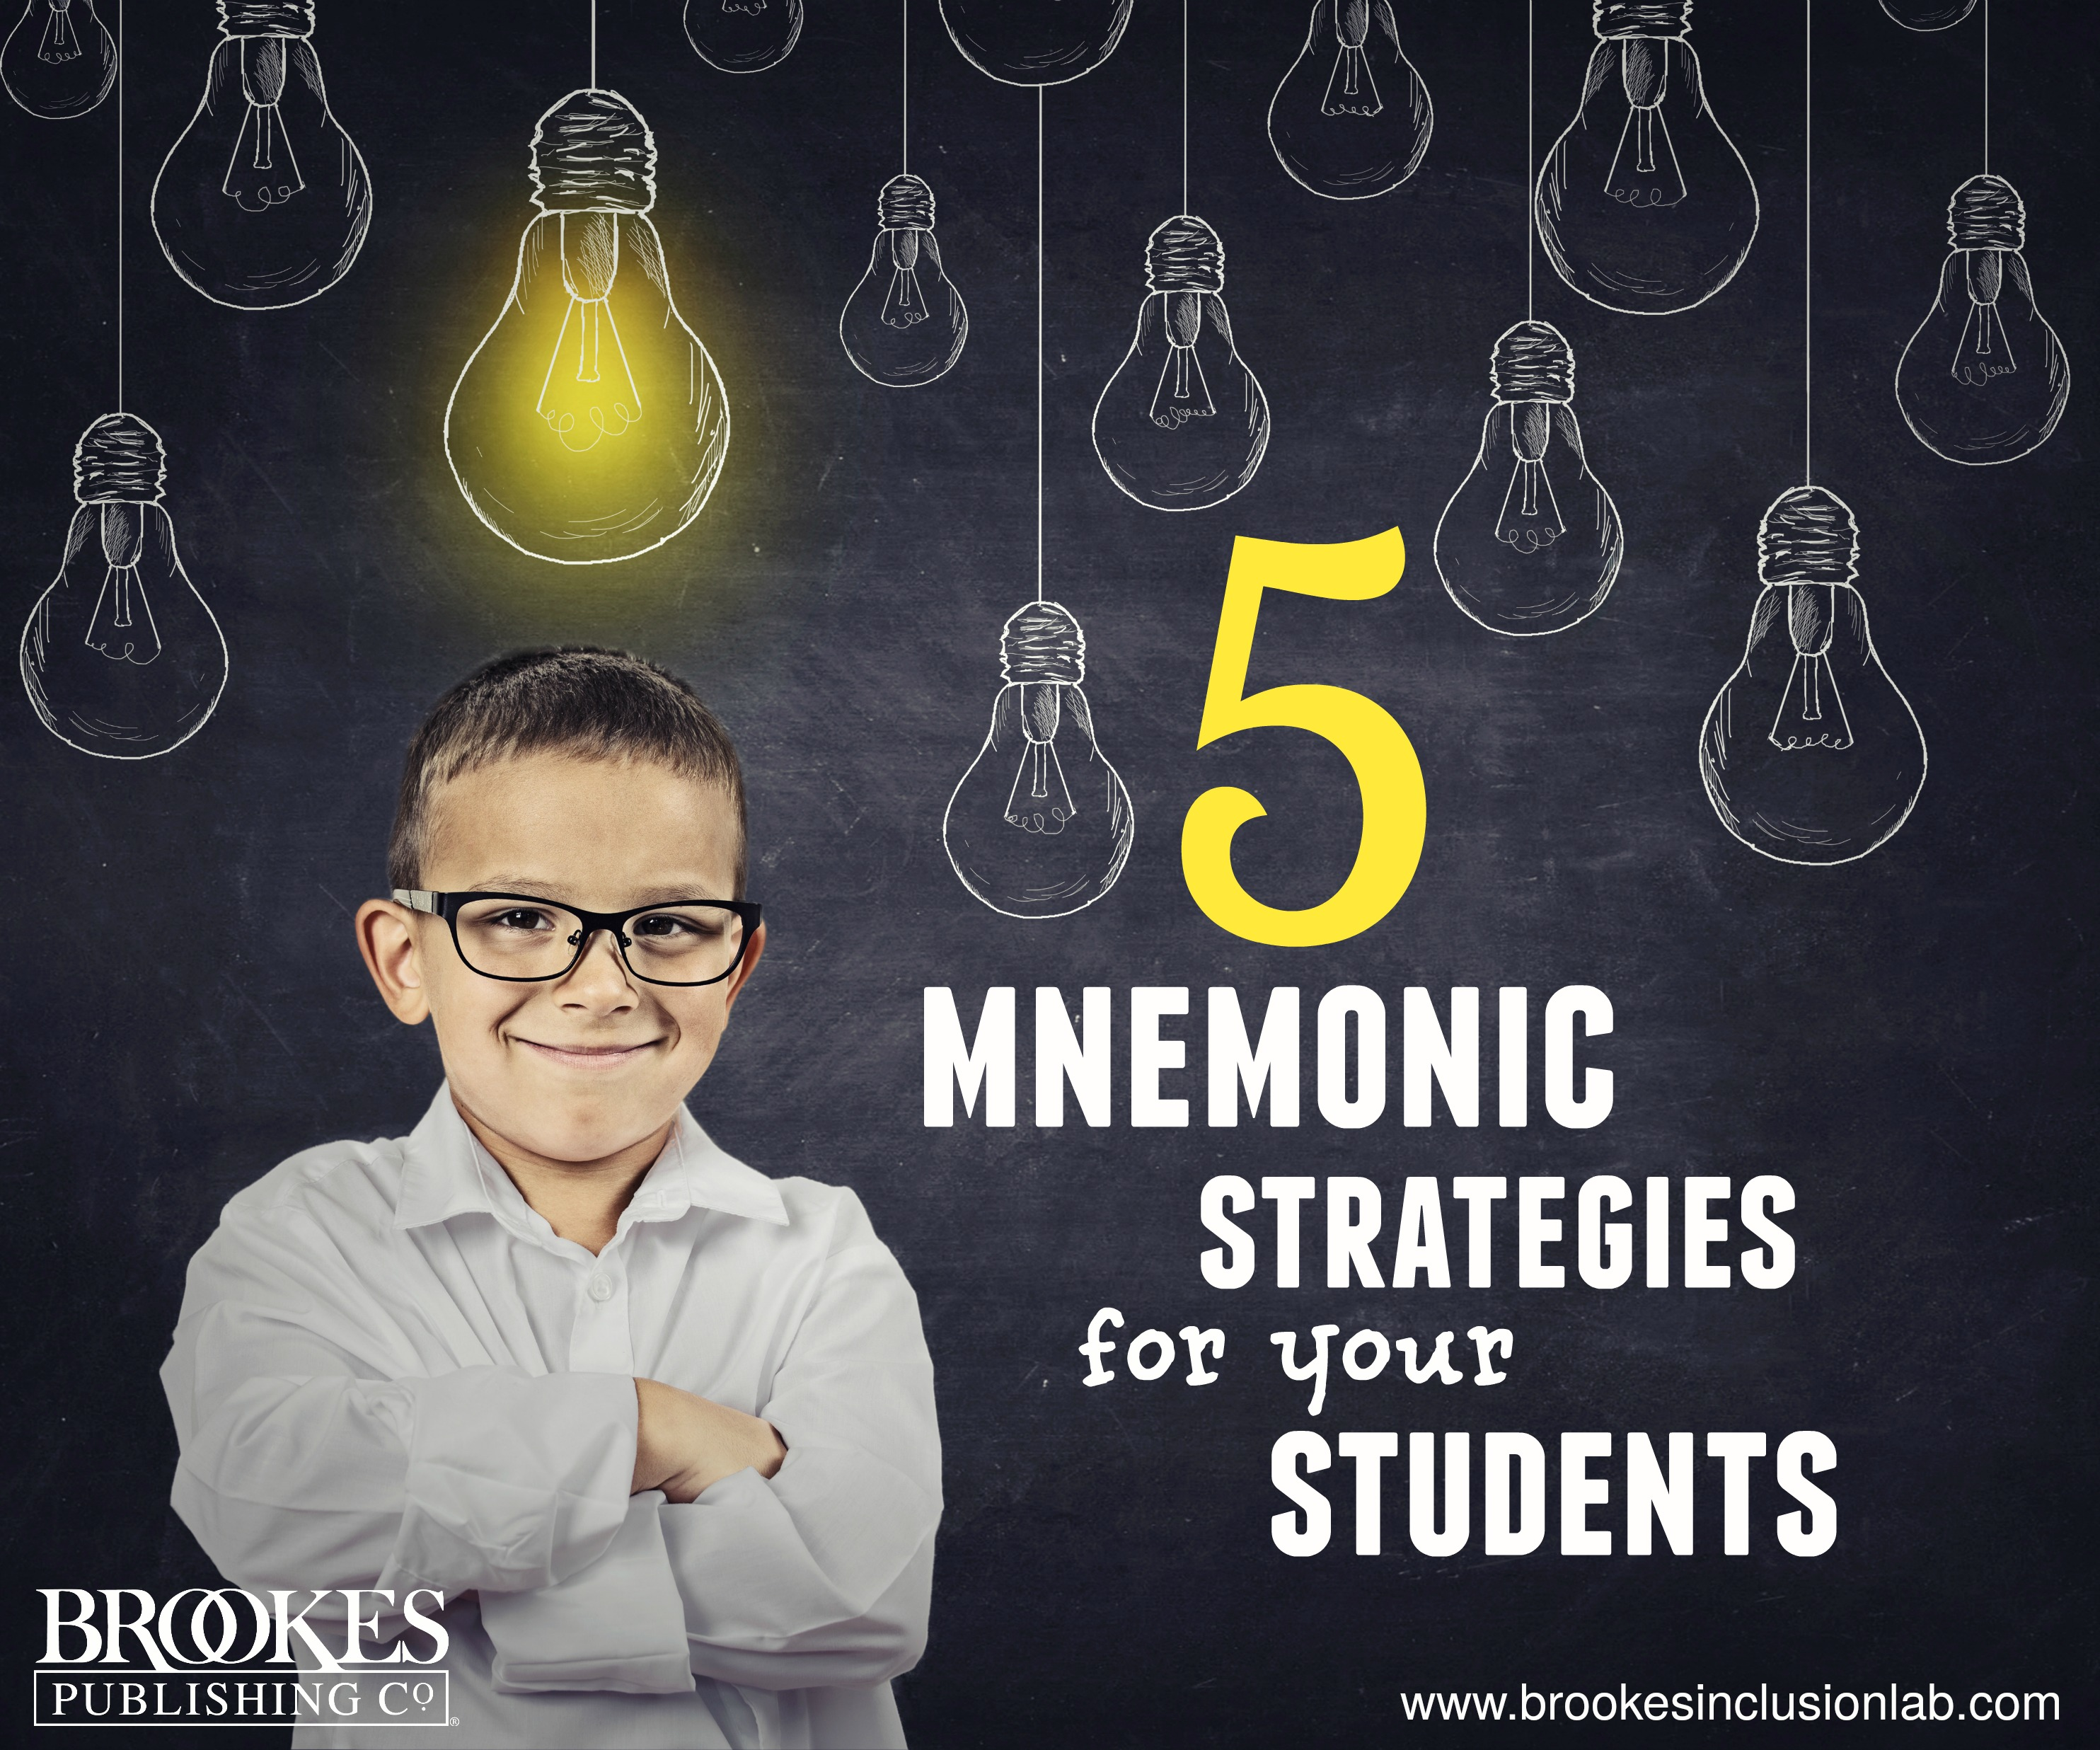 5 Mnemonic Strategies to Help Students Succeed in School